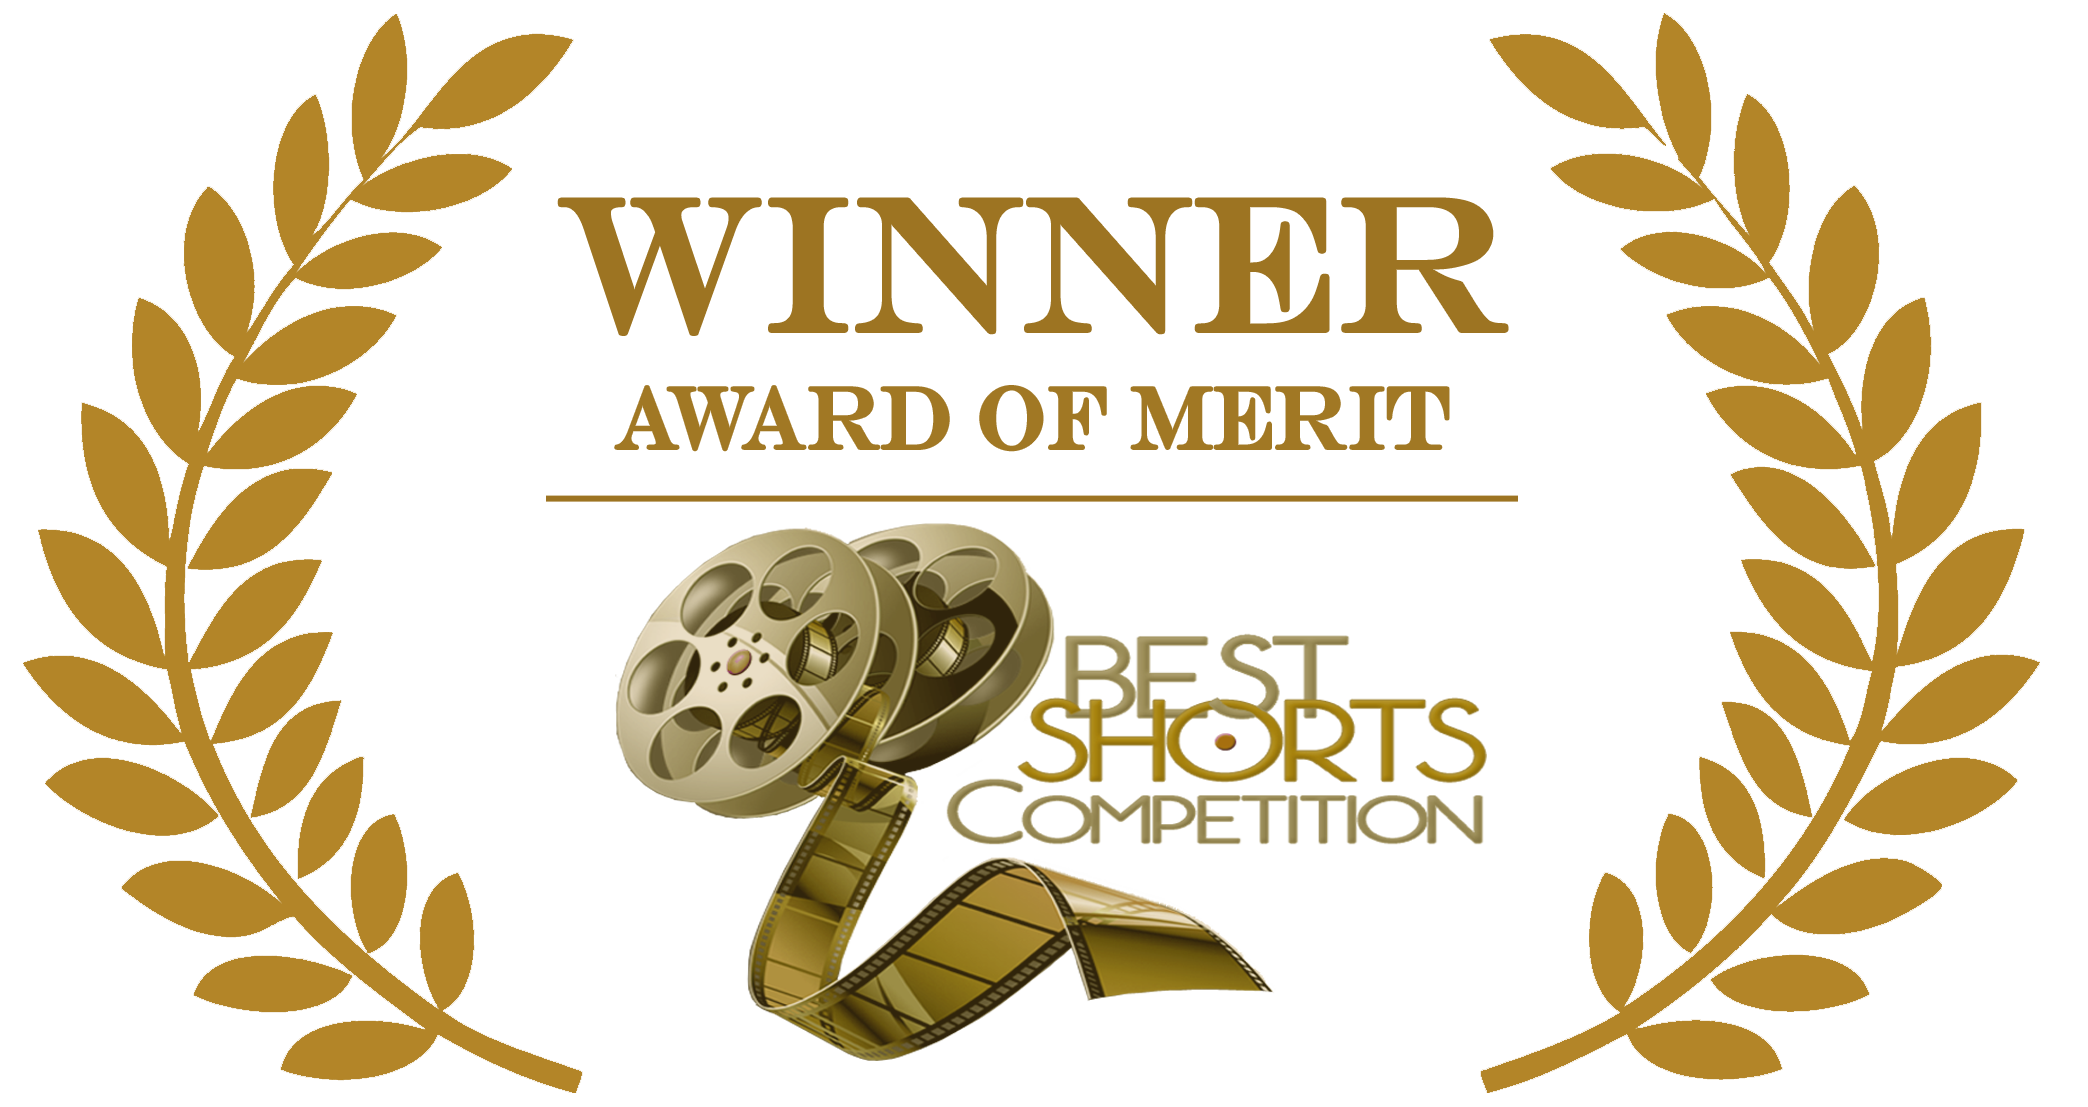 http://bestshorts.net/wp-content/uploads/2014/11/BEST-SHORTS-MERIT-logo-gold.png